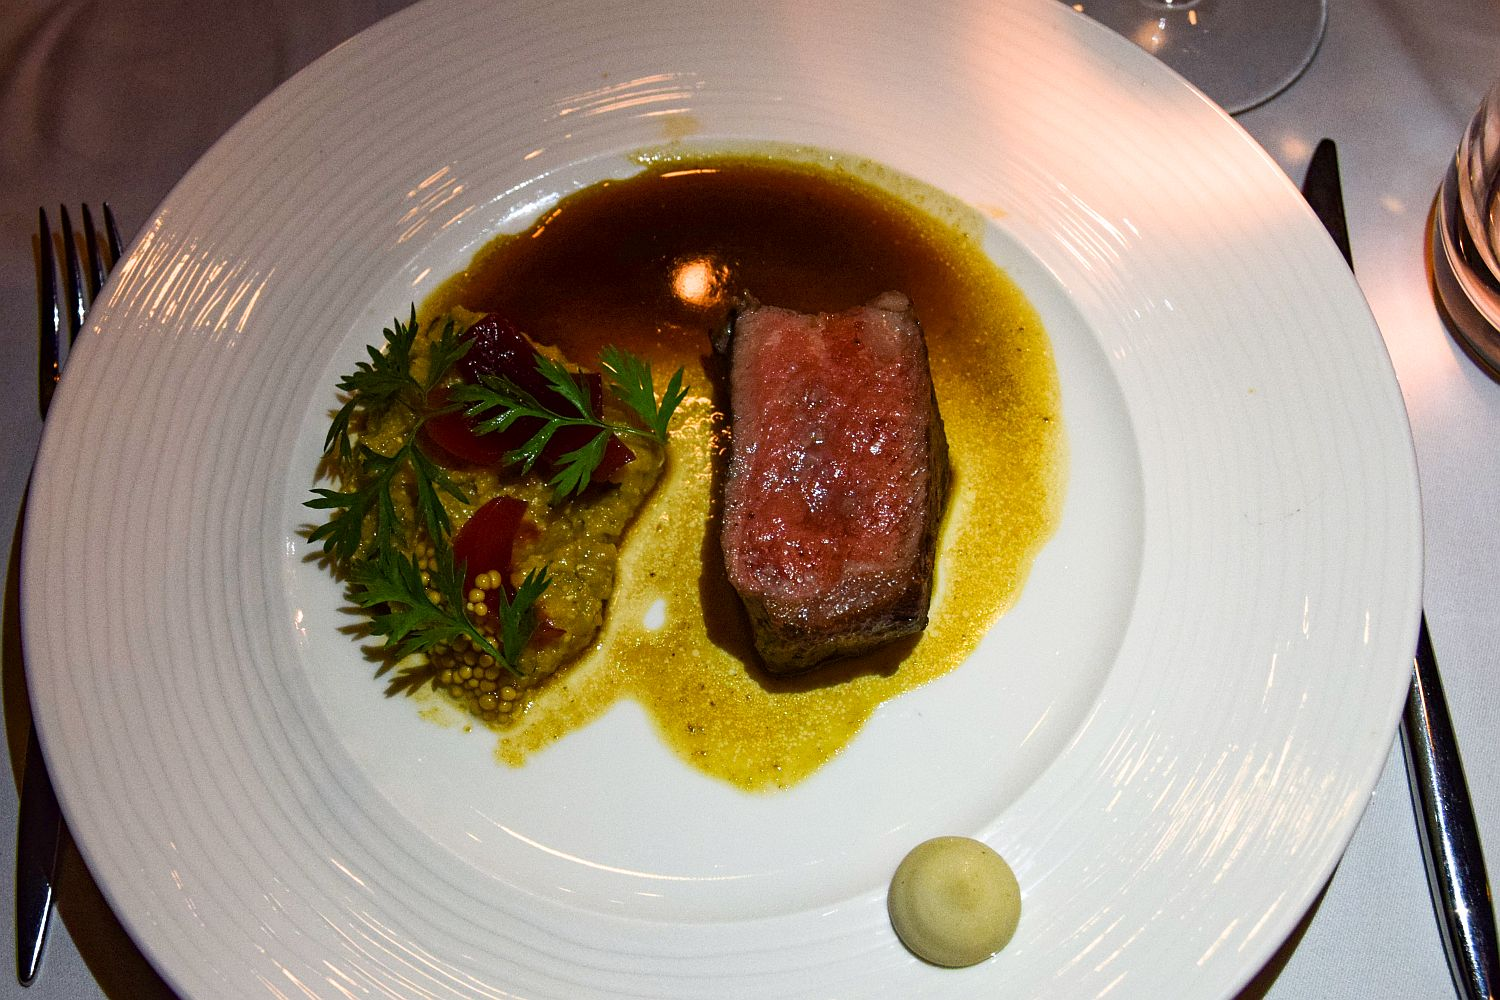 Dry-aged tenderloin with bone marrow sauce, mushroom polenta, anchovy mayonnaise, and pickled mustard seeds by Strelec Restaurant chef Igor Jagodic